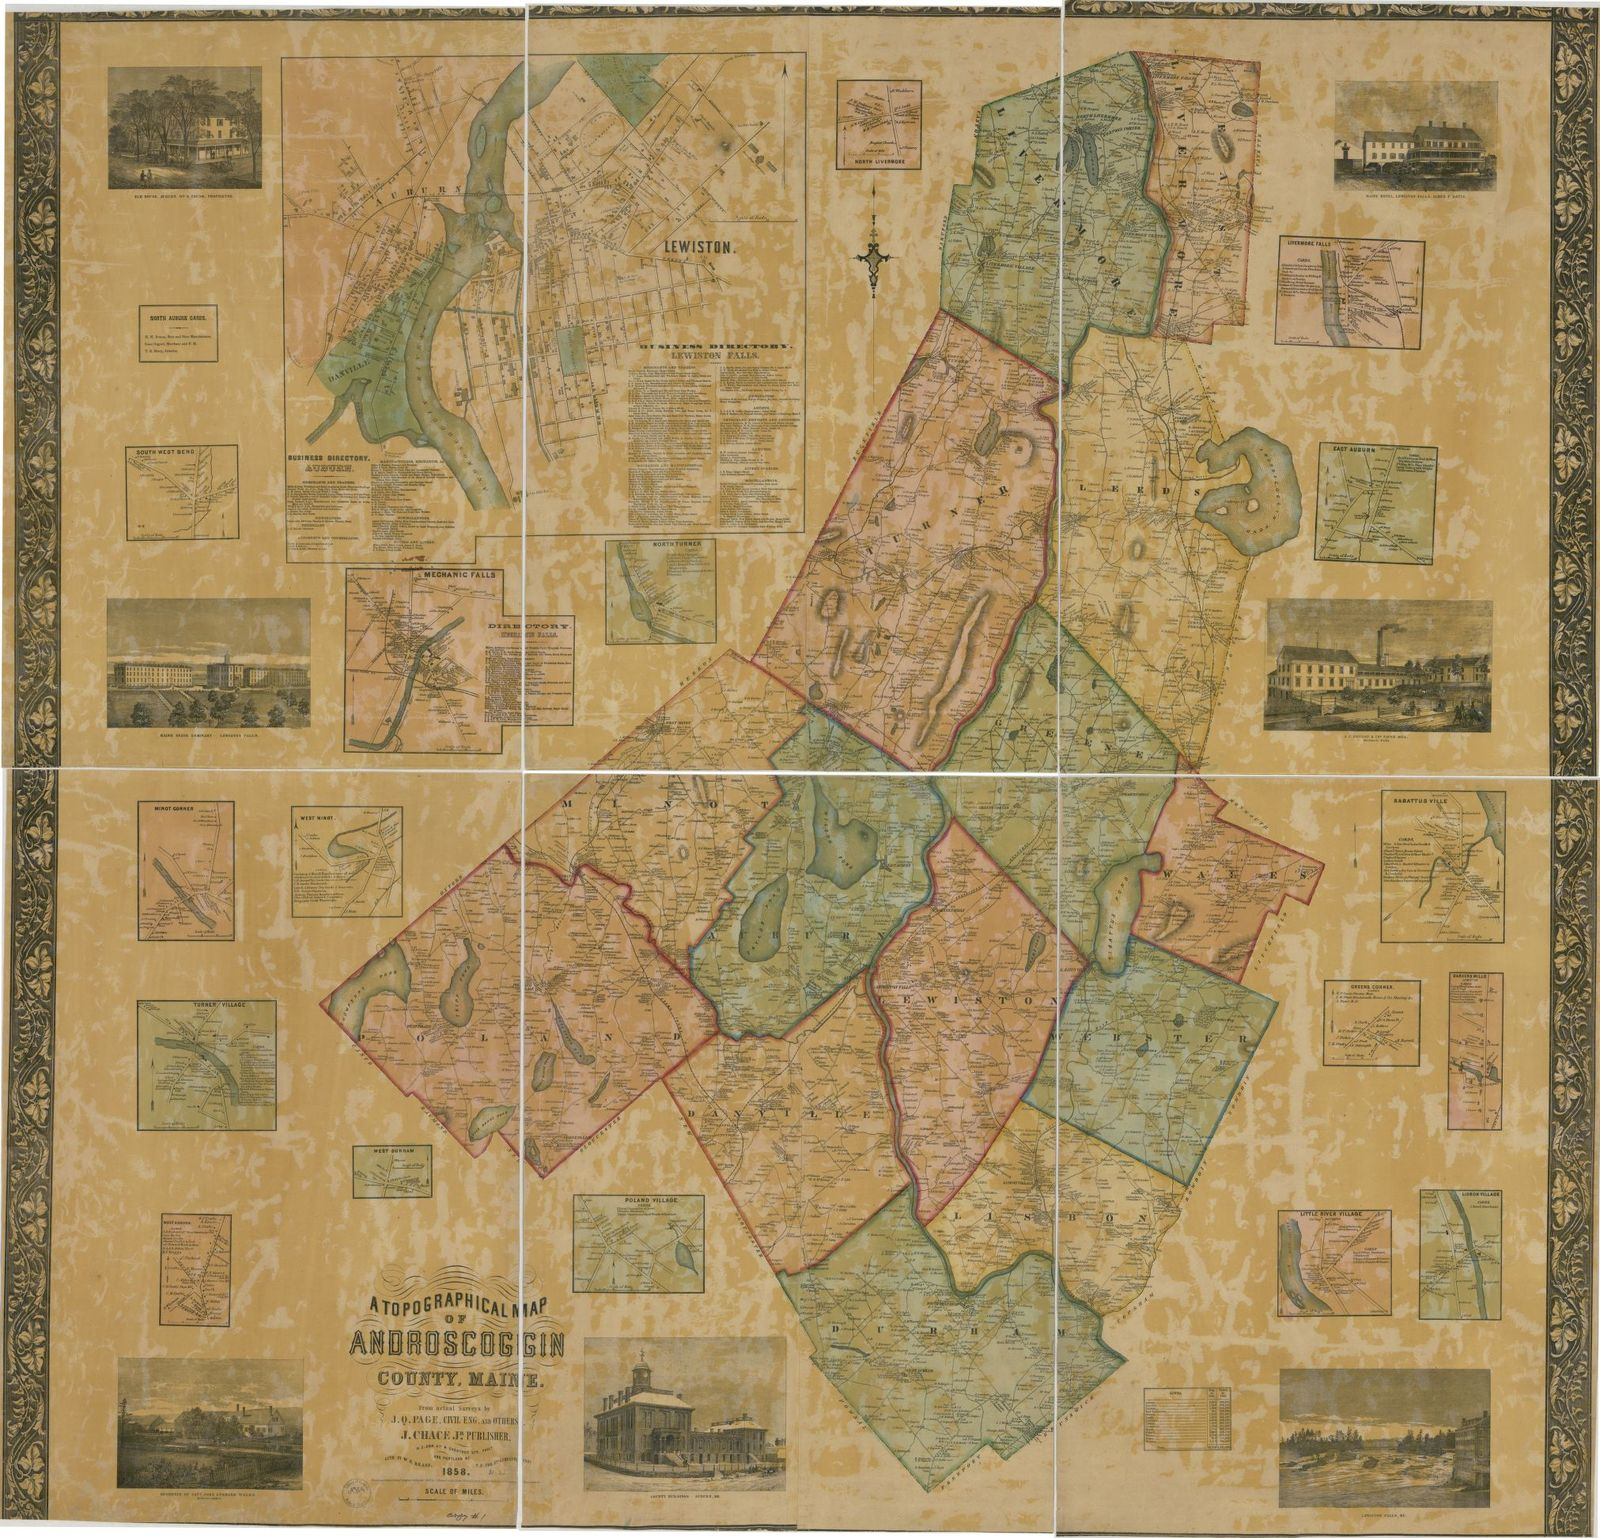 A Topographical Map Of Androscoggin County Maine Picryl